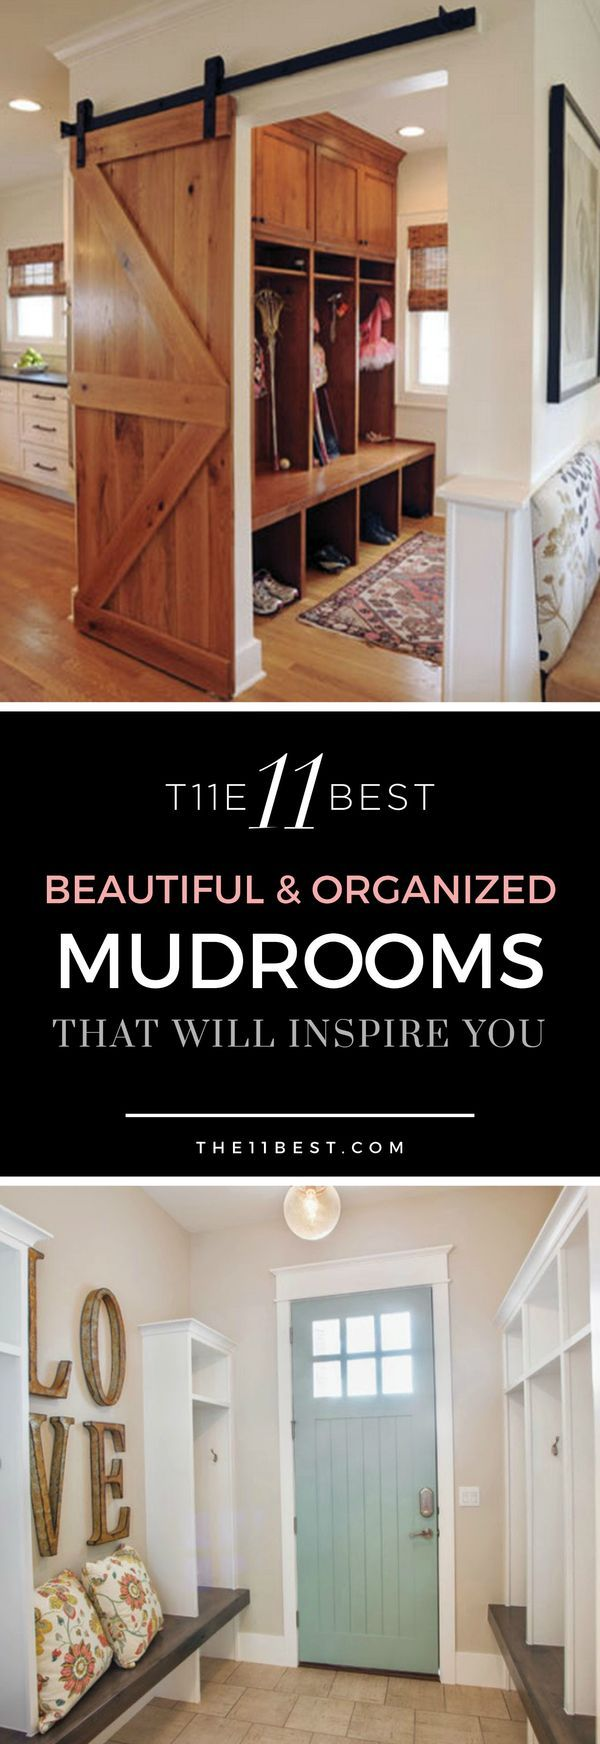 Create a mudroom that adds impact and design to your home. Love these ideas!